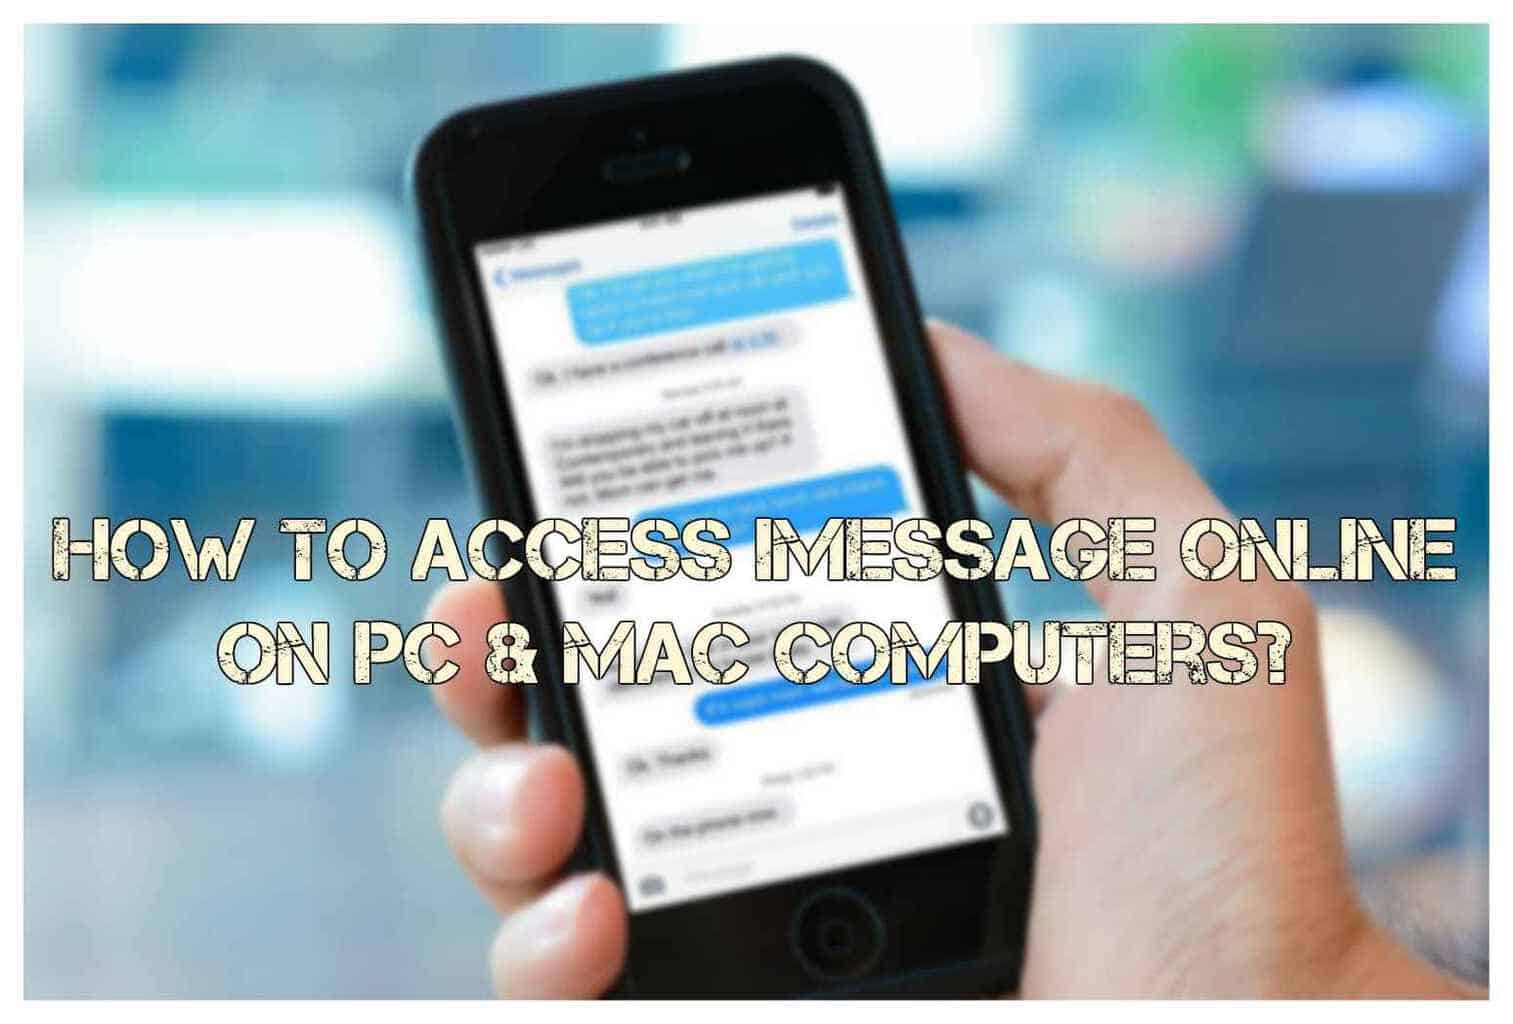 How to access iMessage app online? 1